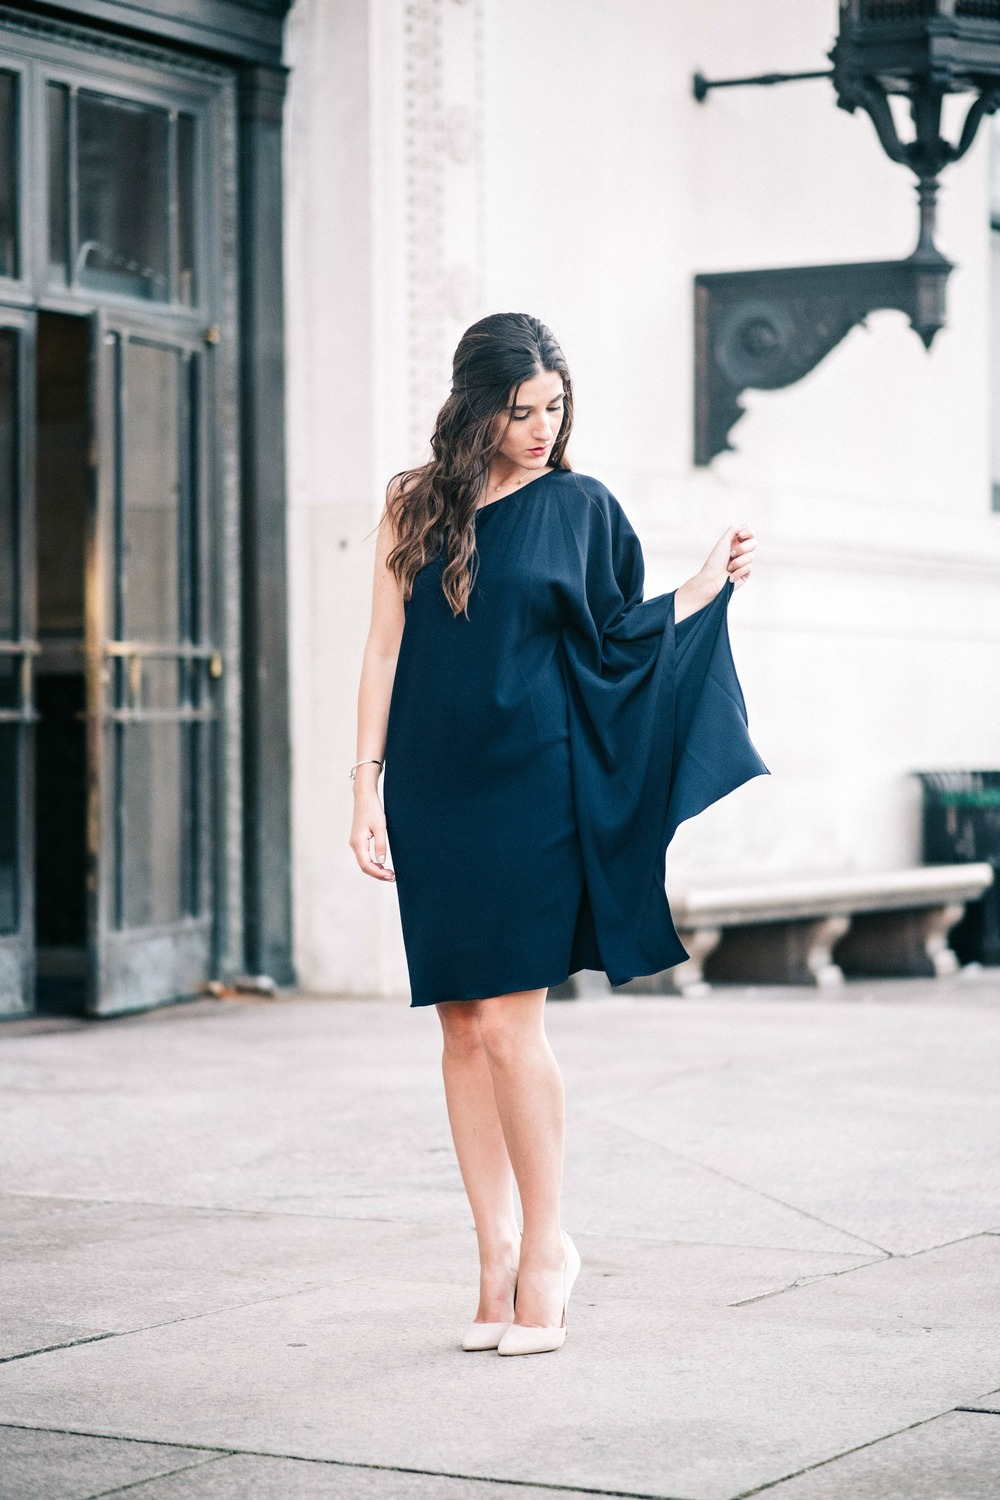 One Shoulder Dress Jay Godgrey Louboutins & Love Fashion Blog Esther Santer NYC Street Style Blogger Outfit OOTD Trendy Girl Women Elegant Fancy Attire Hair Inspo Photoshoot Nude Heels Steve Madden Gold Jewelry Navy Pretty Shopping Beautiful Buy Shoes.jpg